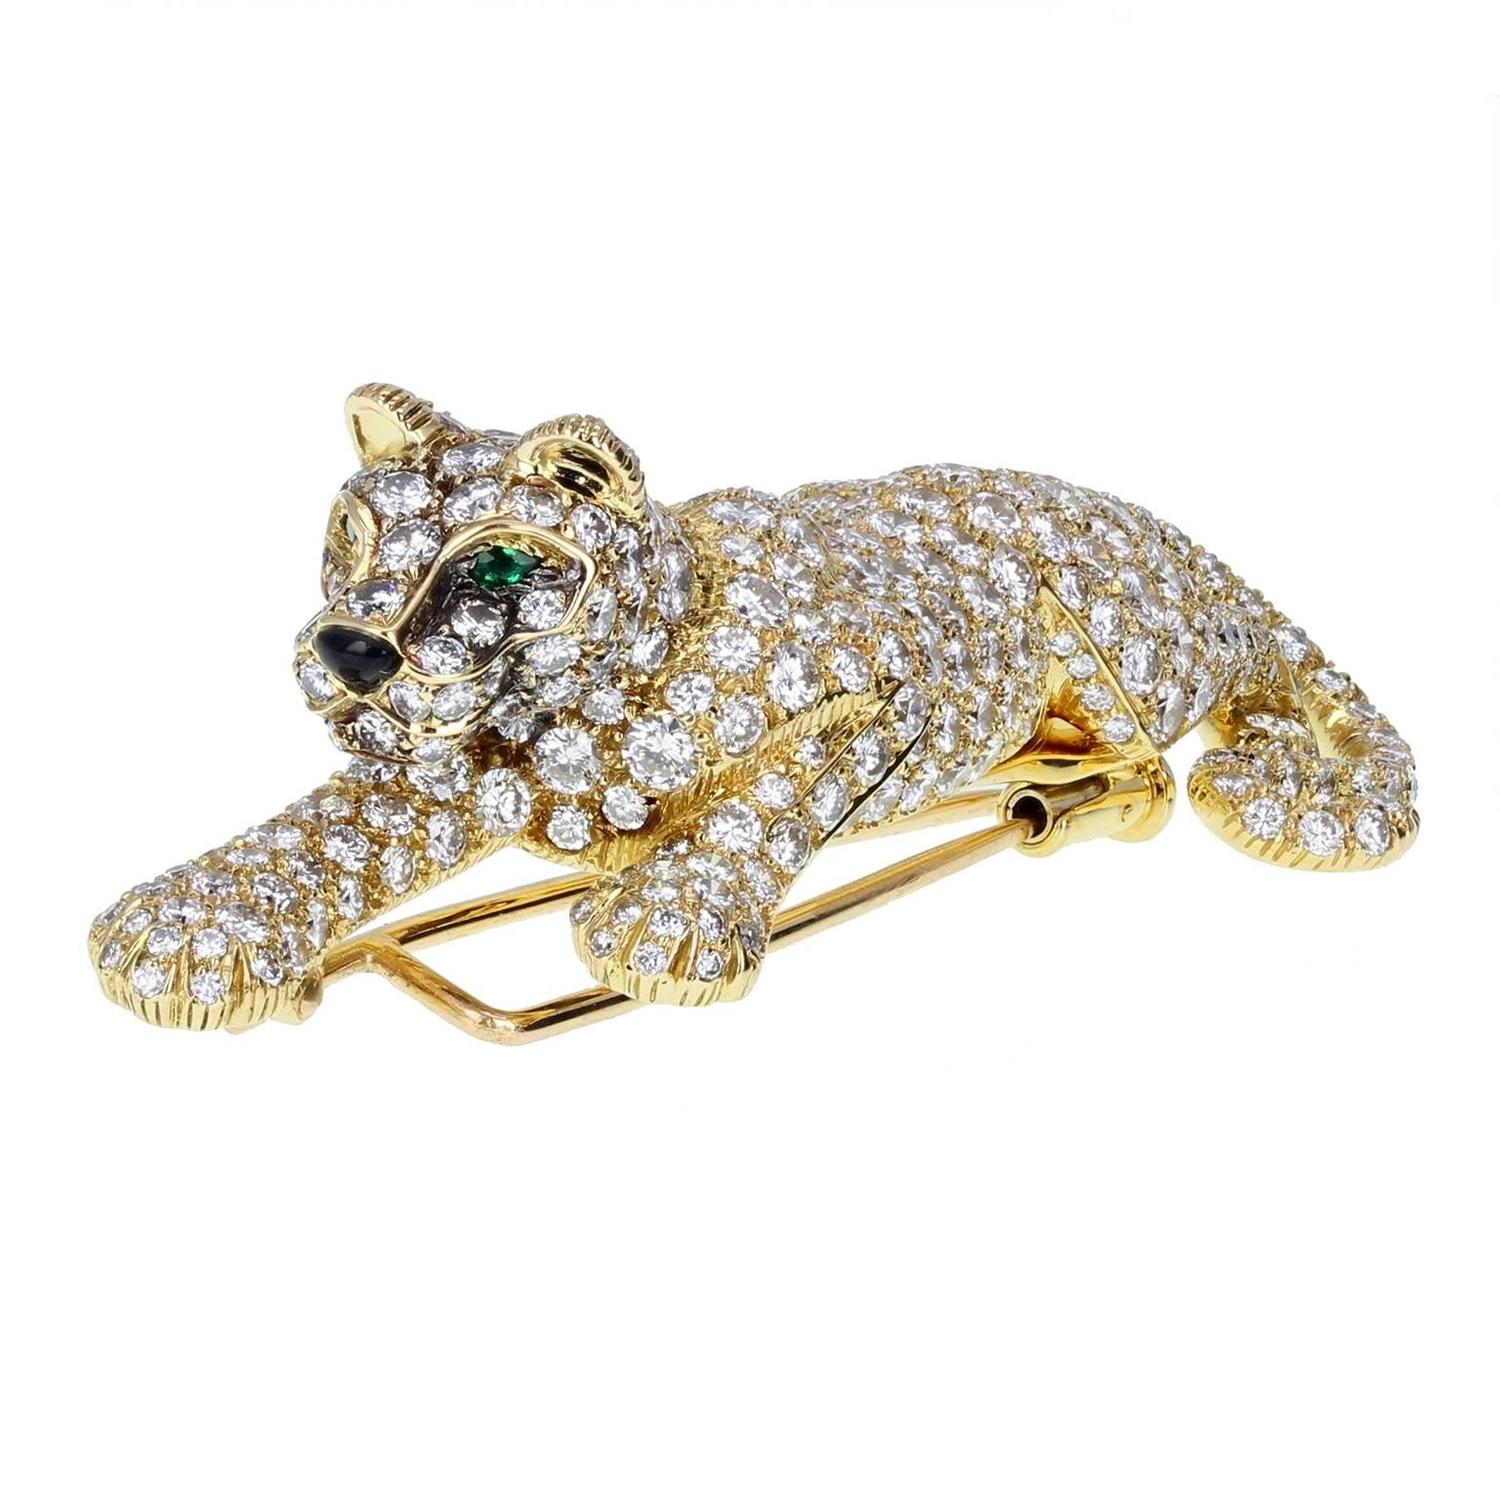 clip gorgeous vintage purr barbara paris cartier hutton tiger fectly buys s brooch cartiers